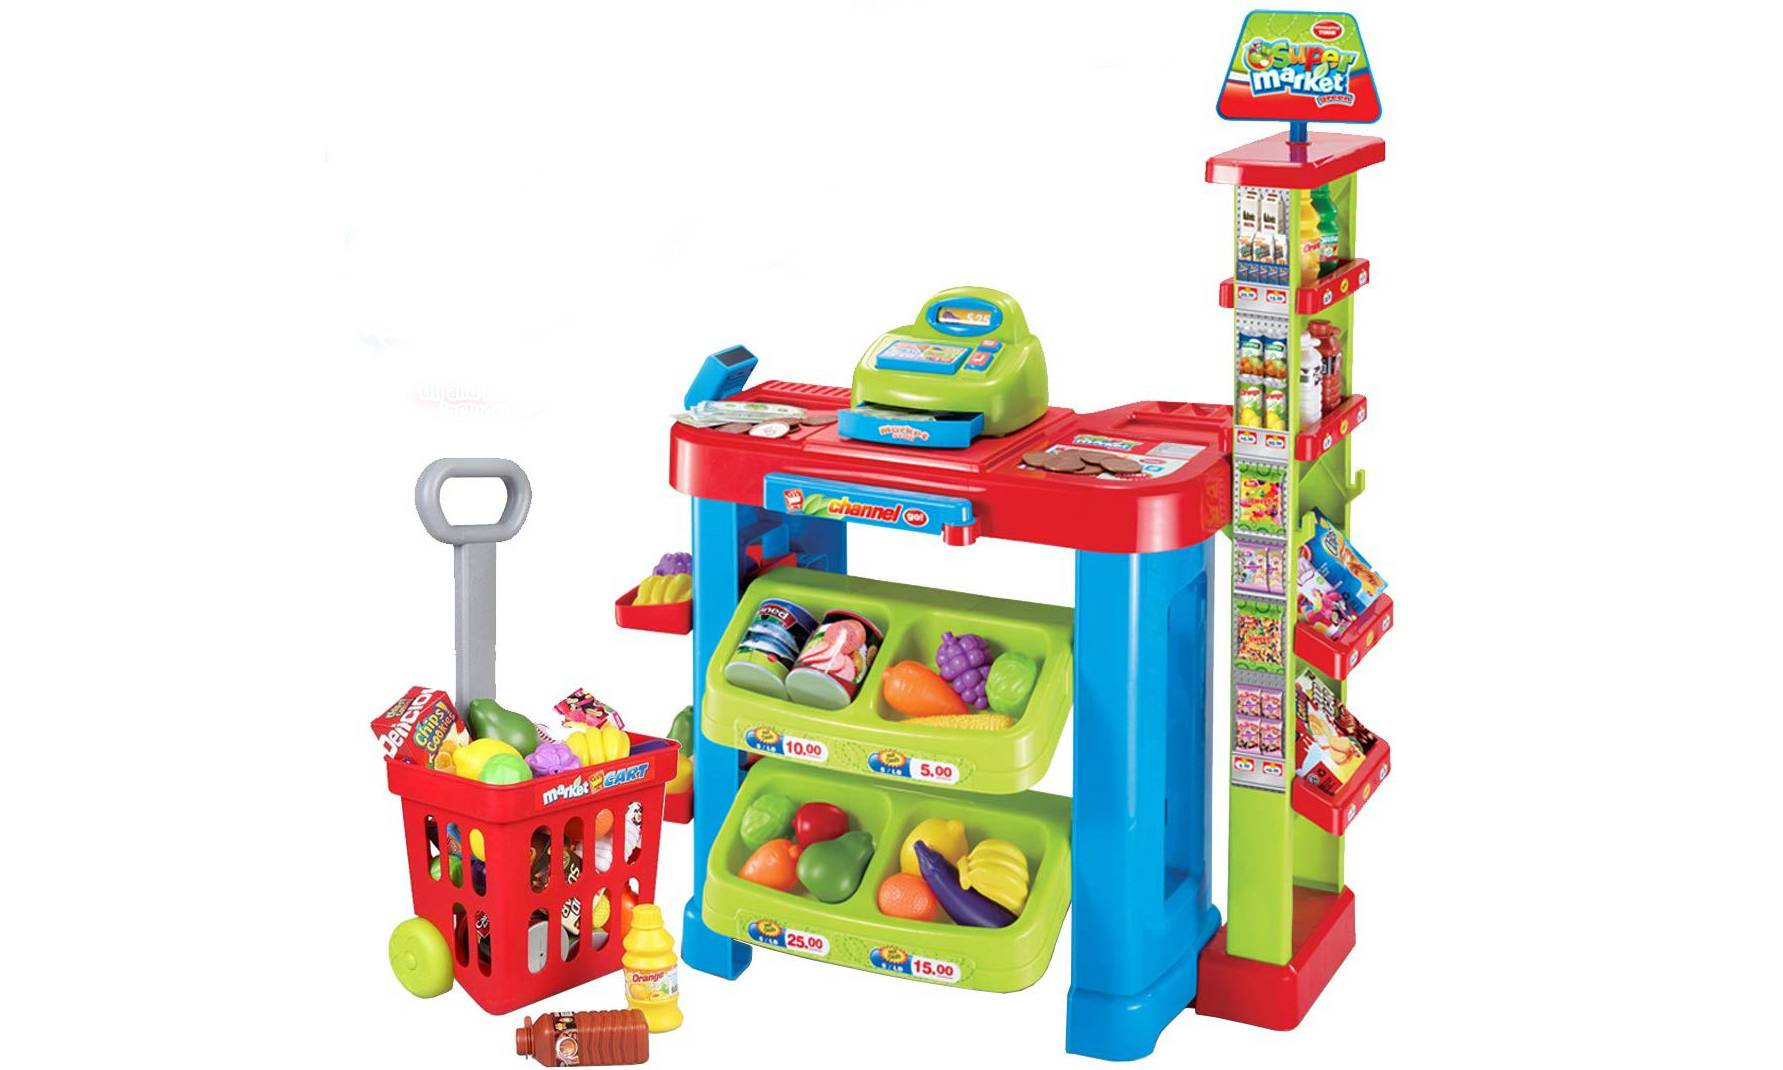 29.99 DEAO Kids' Supermarket Play Set with Accessories